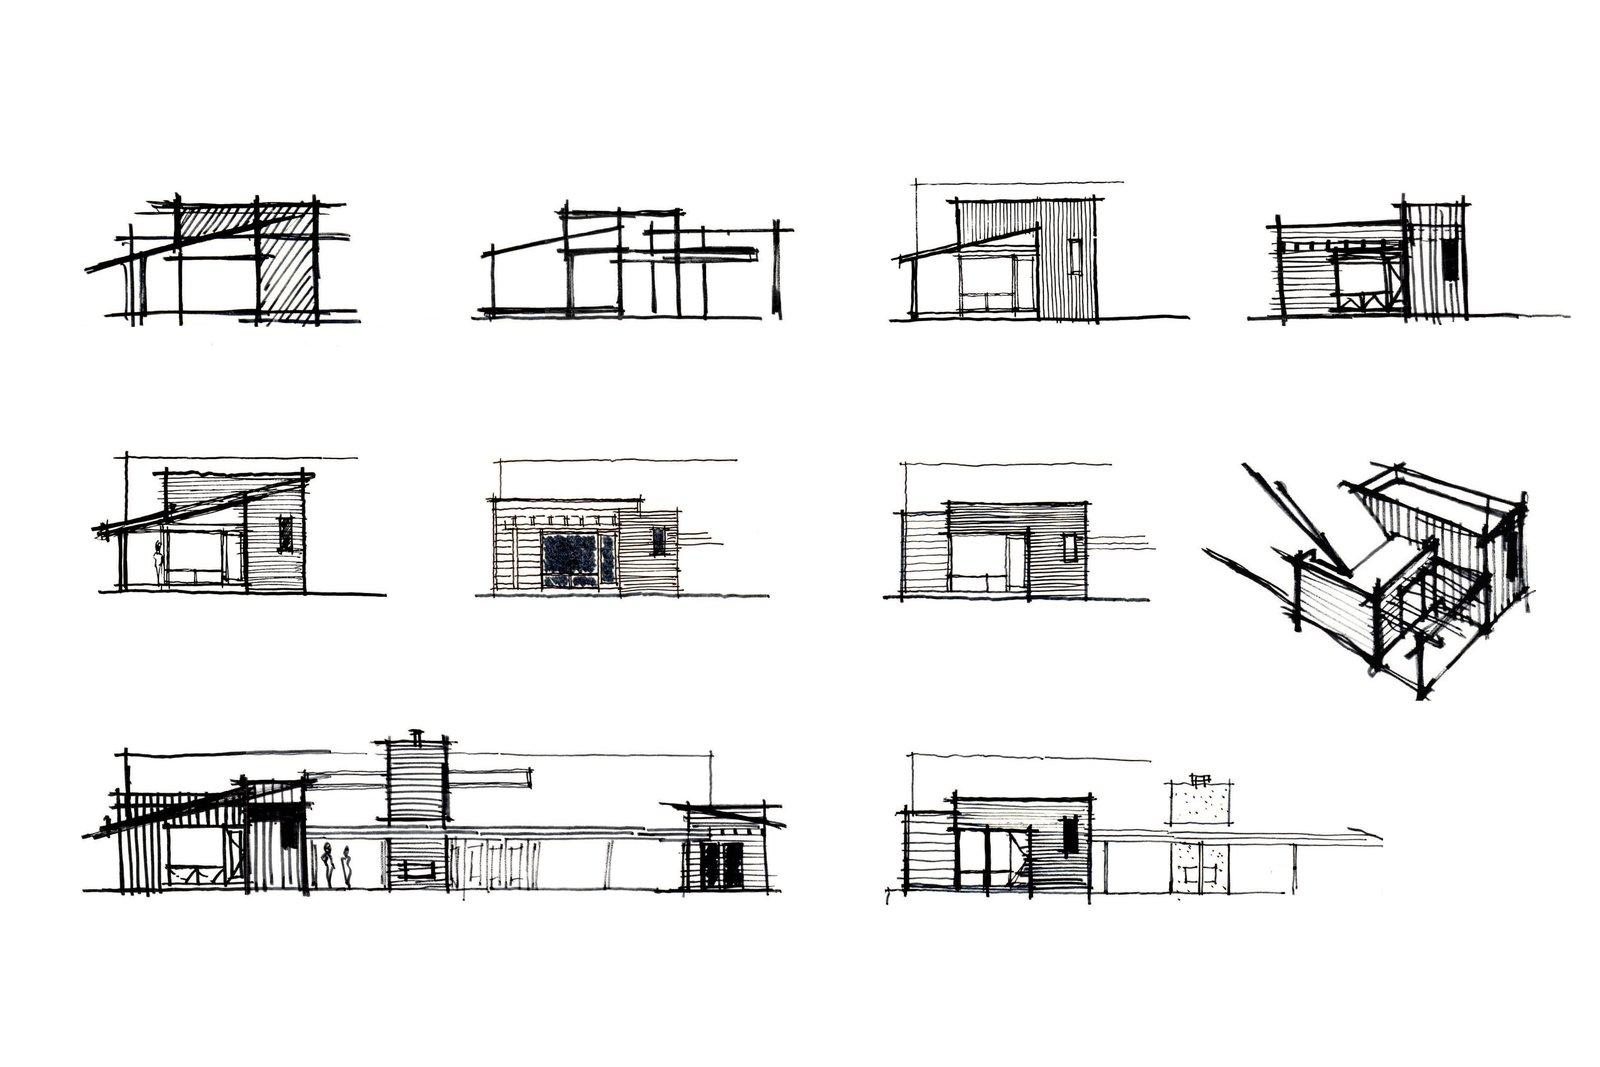 [schematic design sketches // myd studio, inc.] Tagged: Exterior, House, Wood Siding Material, and Flat RoofLine.  Villa Park Modern by MYD studio, inc. from Architectural Drawings